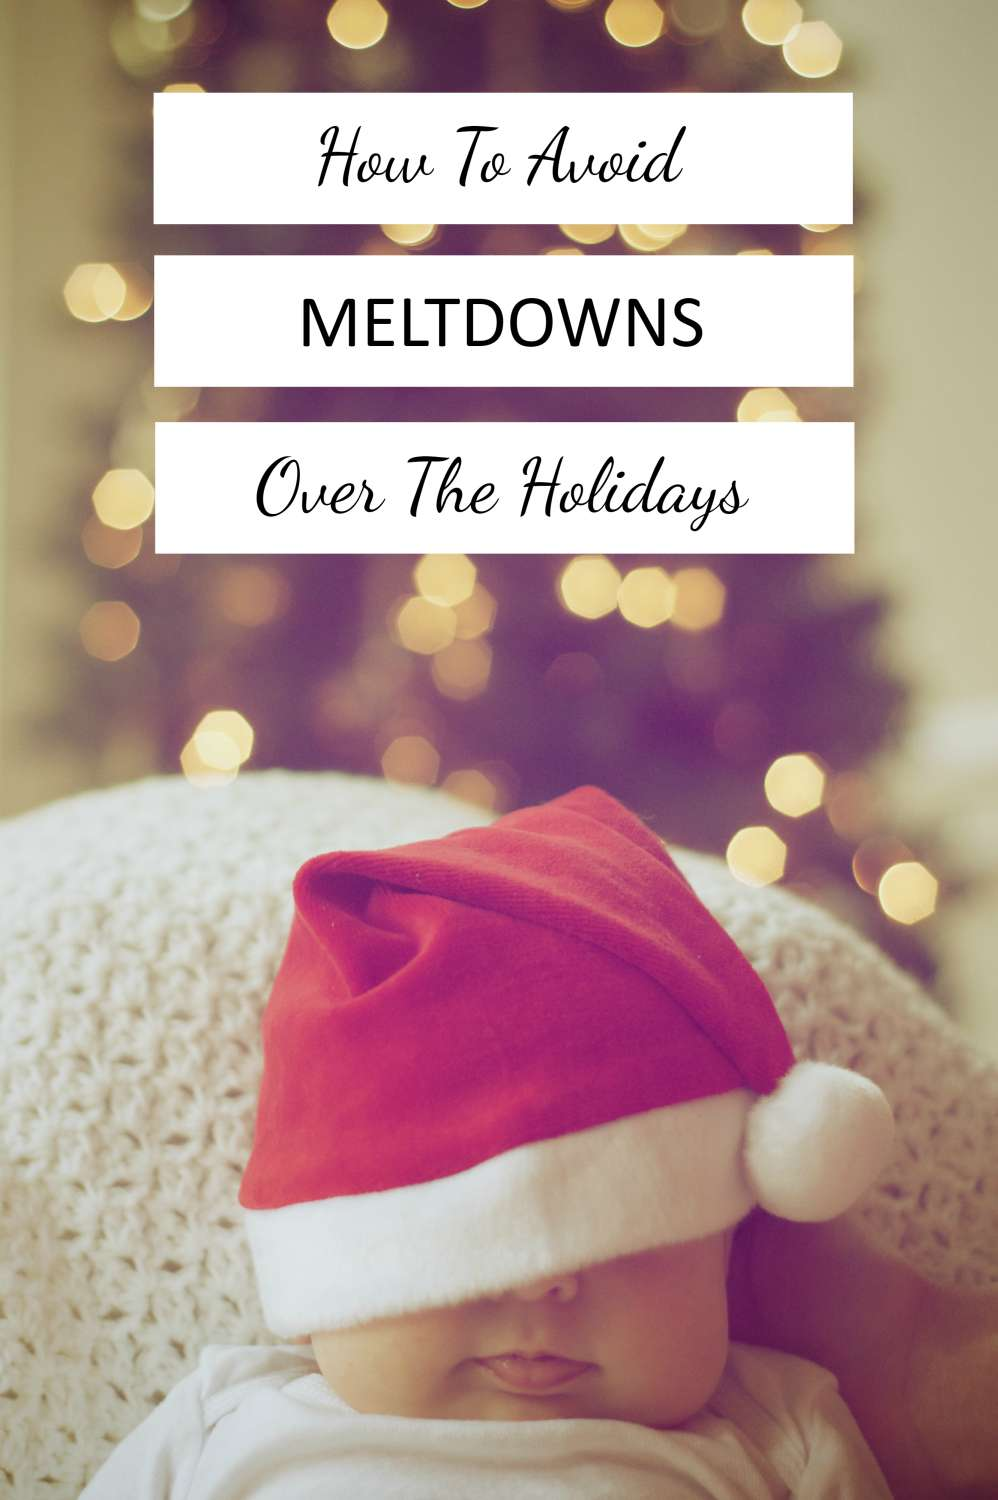 How To Avoid Meltdowns During The Holidays | Use these tips to avoid toddler tantrums and baby crying fits so you can truly enjoy your holidays.